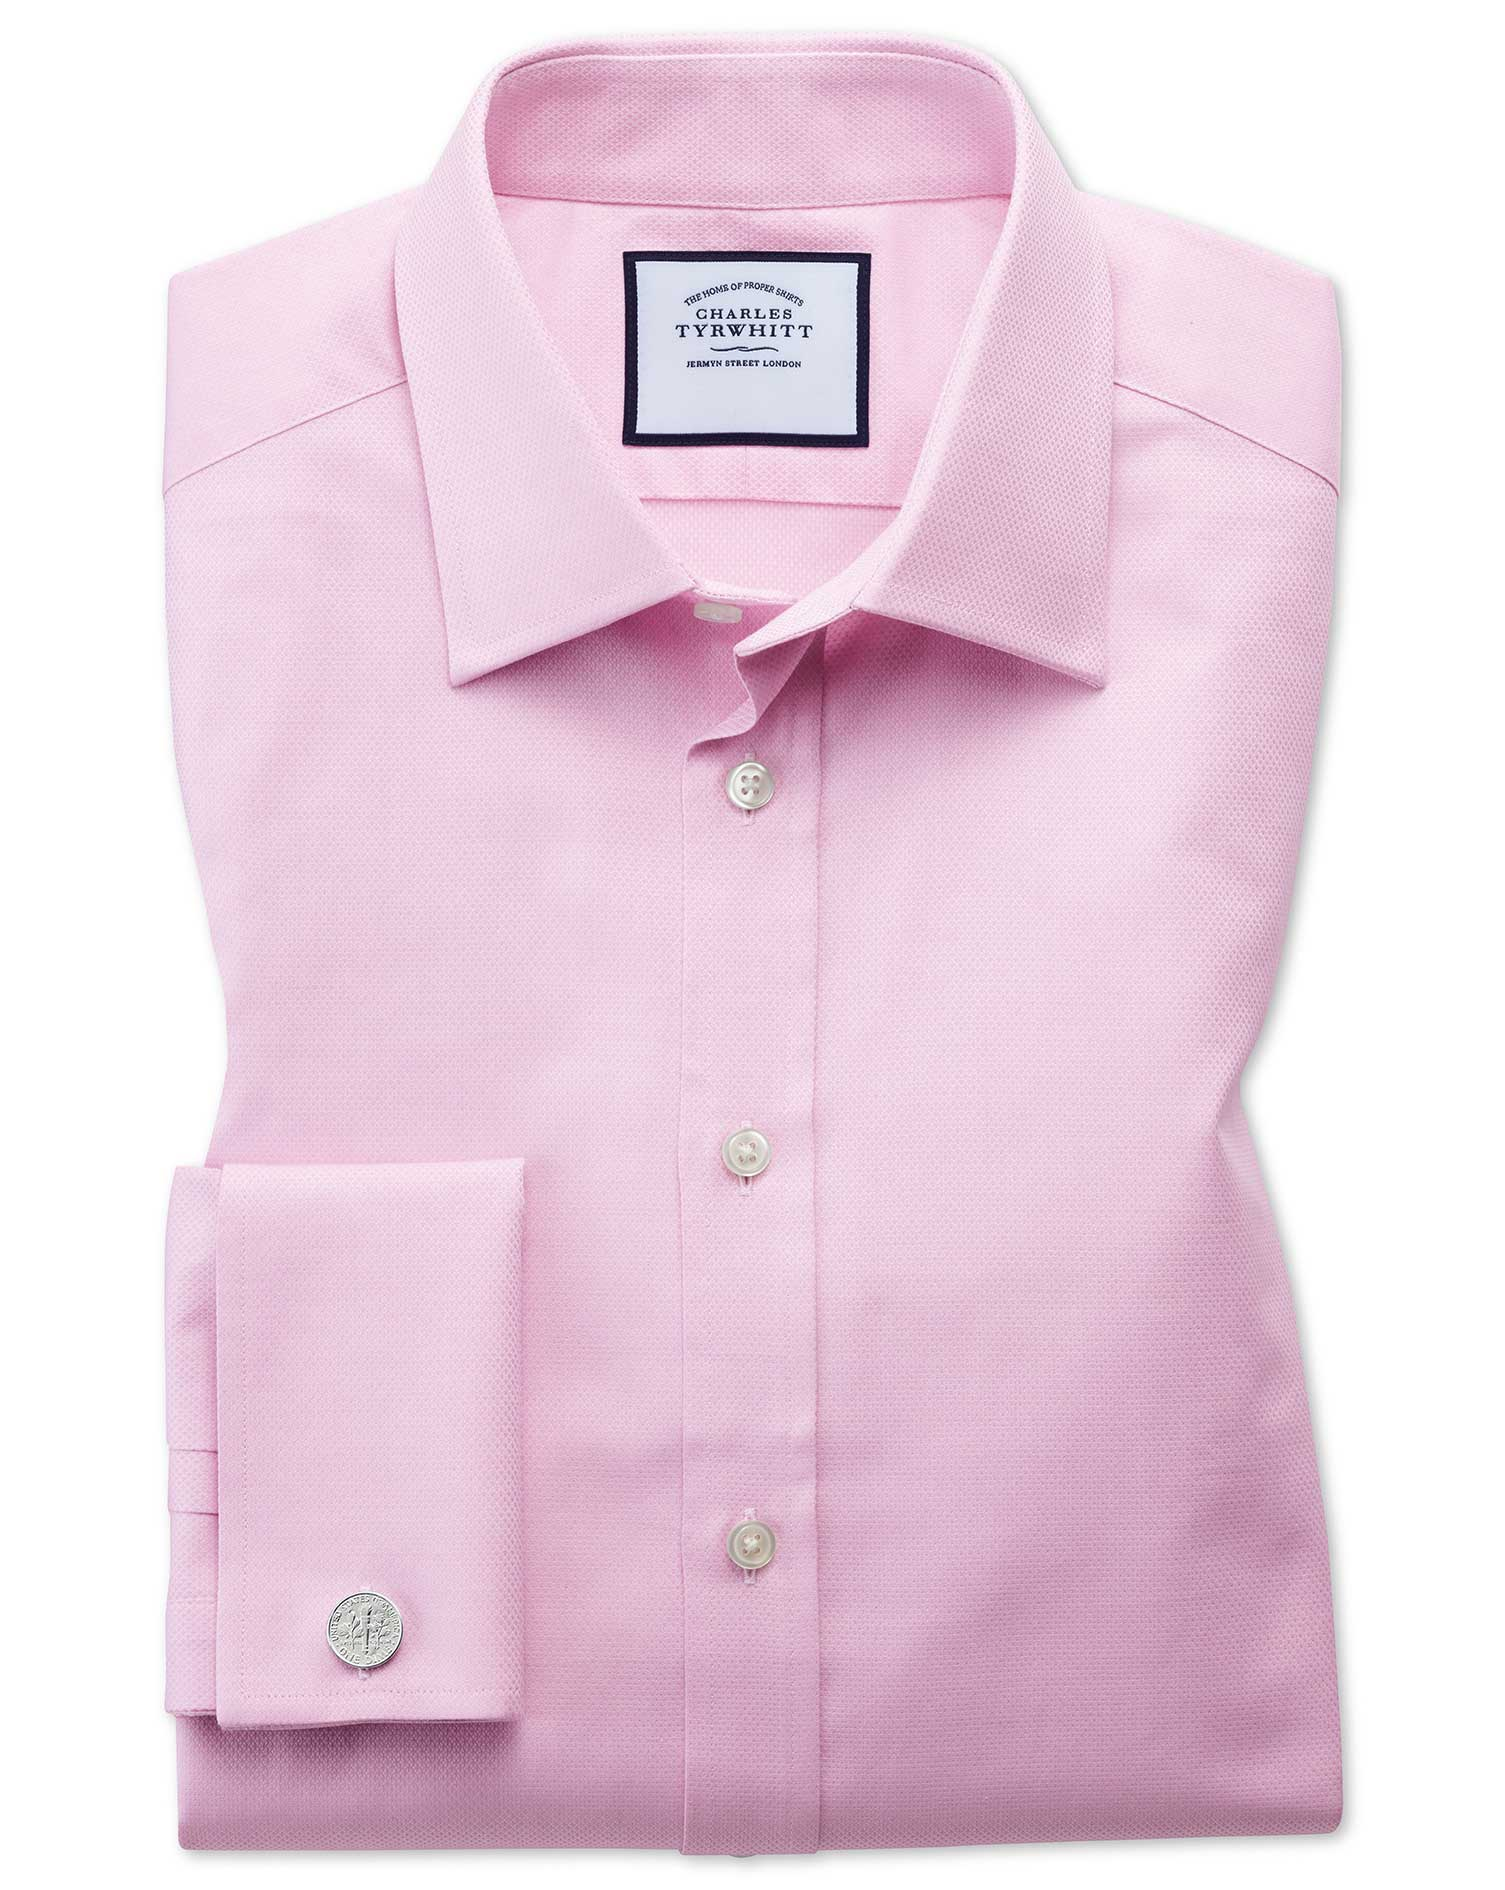 Extra Slim Fit Egyptian Cotton Trellis Weave Pink Formal Shirt Single Cuff Size 16/36 by Charles Tyr